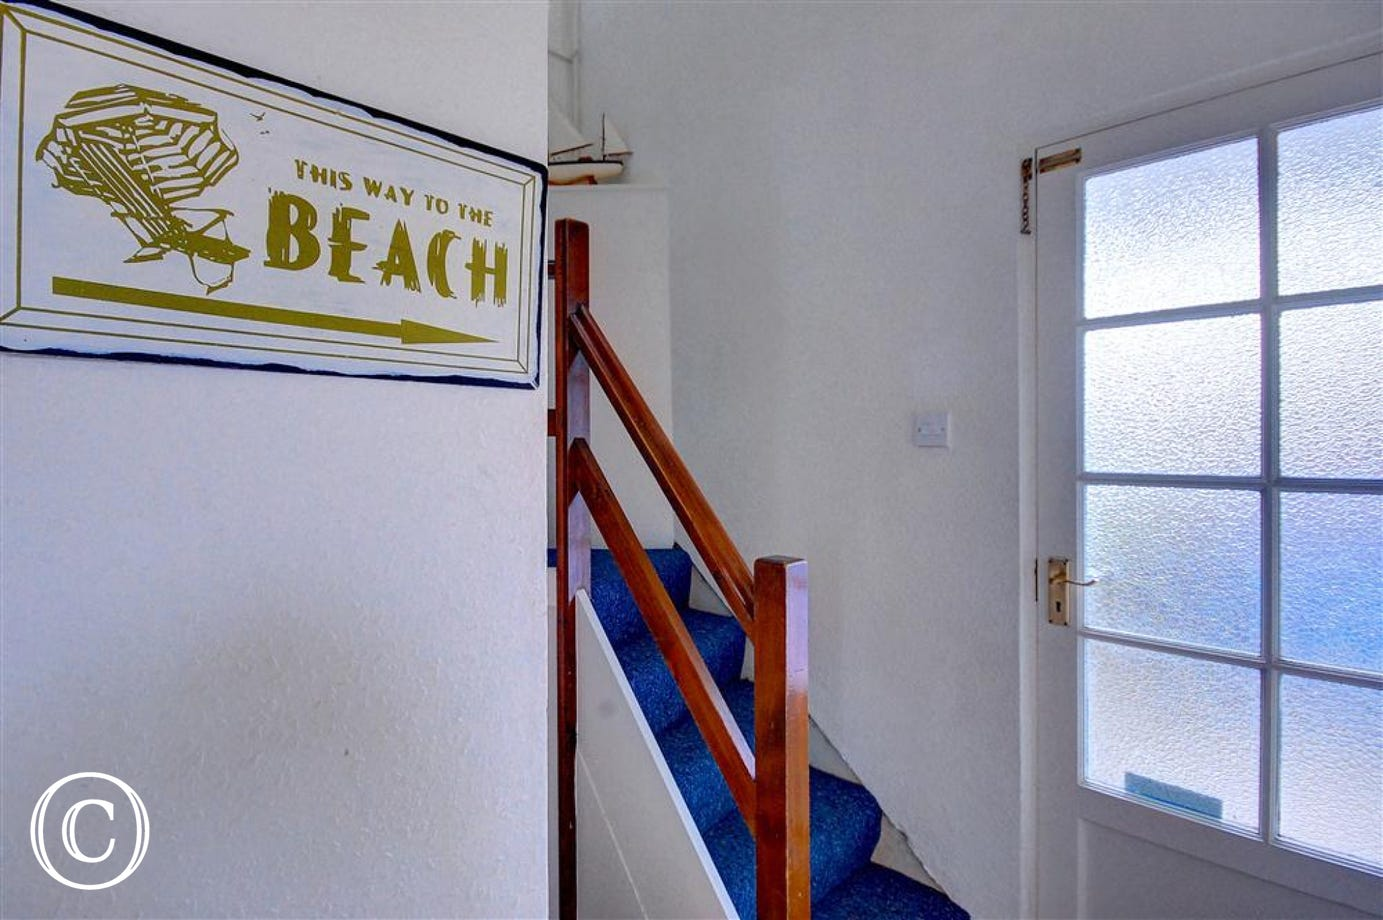 This hallway is bright and spacious and guides you to the beach on entry, the steps up to the bedroom from this area do twist up and round to the left but are carpeted and easy to use.